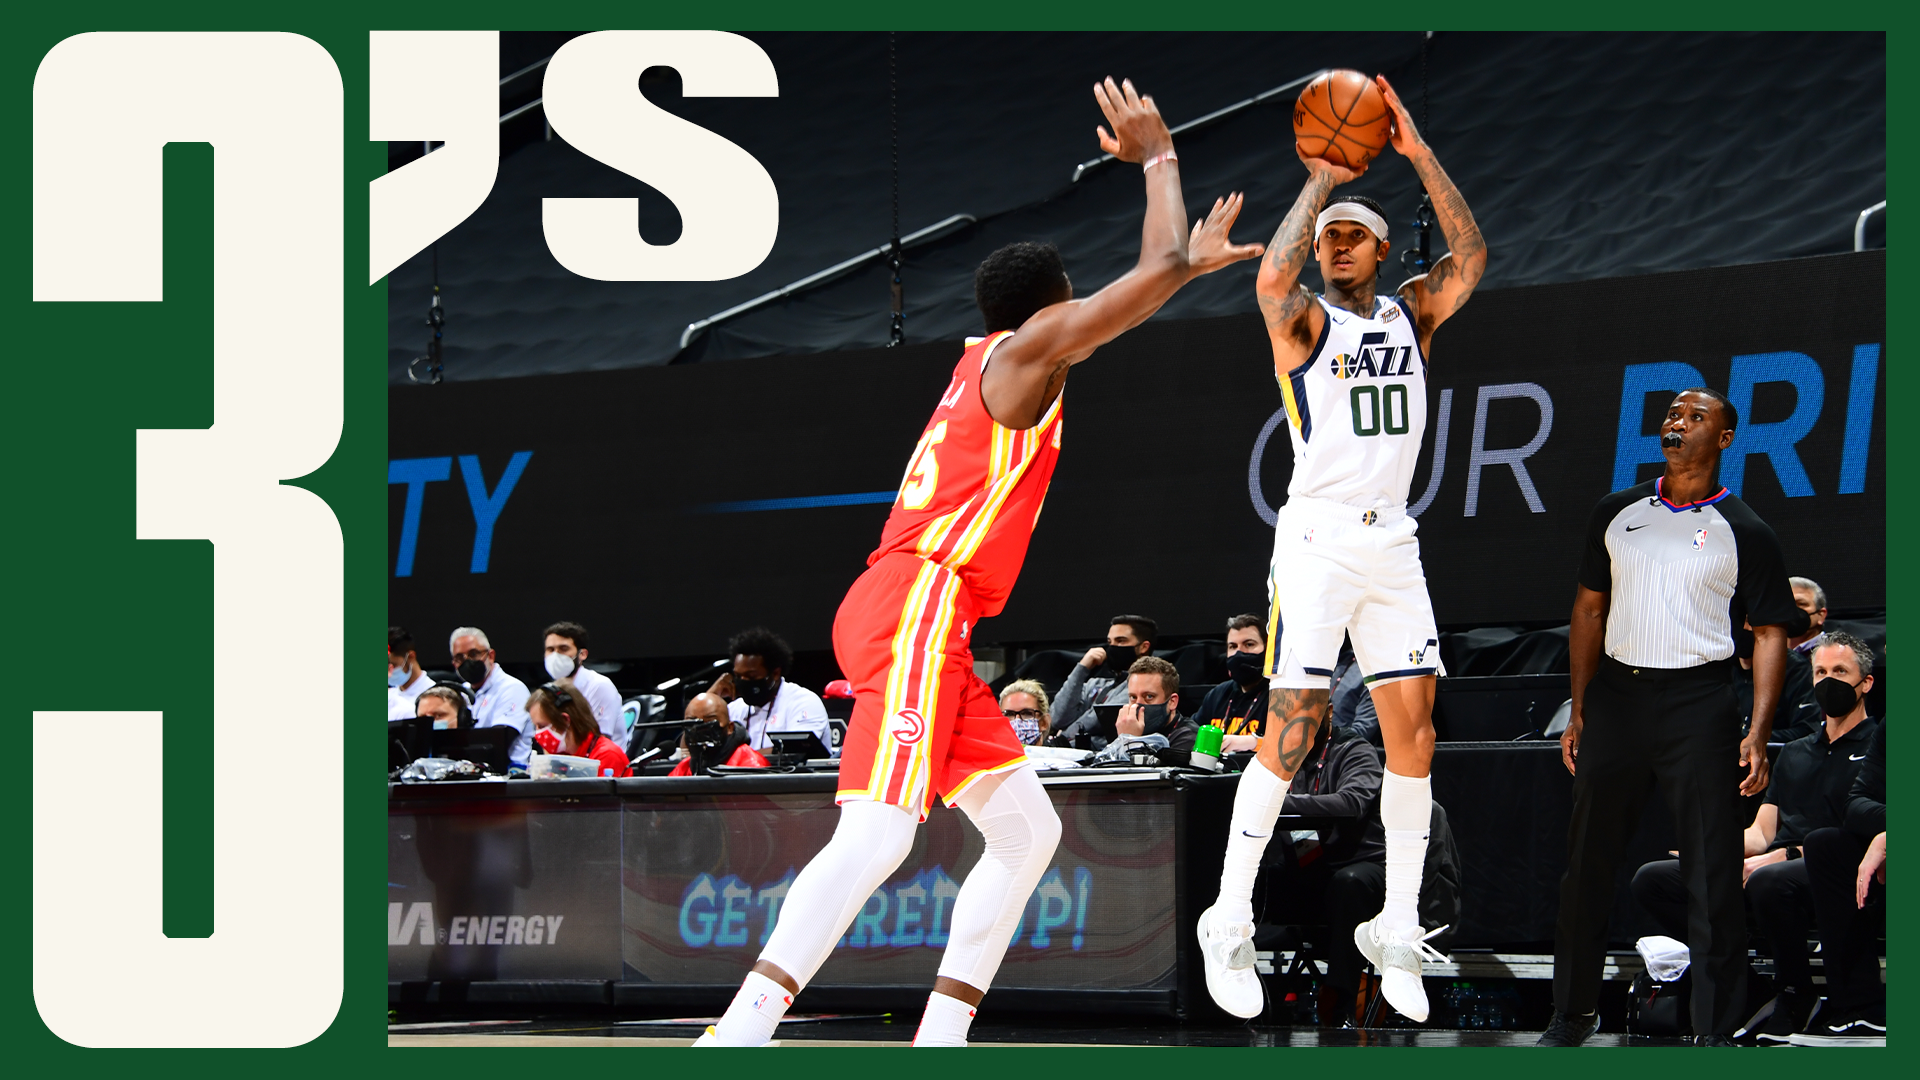 Jazz set FRANCHISE RECORD for 3s made | #ThreesOfTheWeek